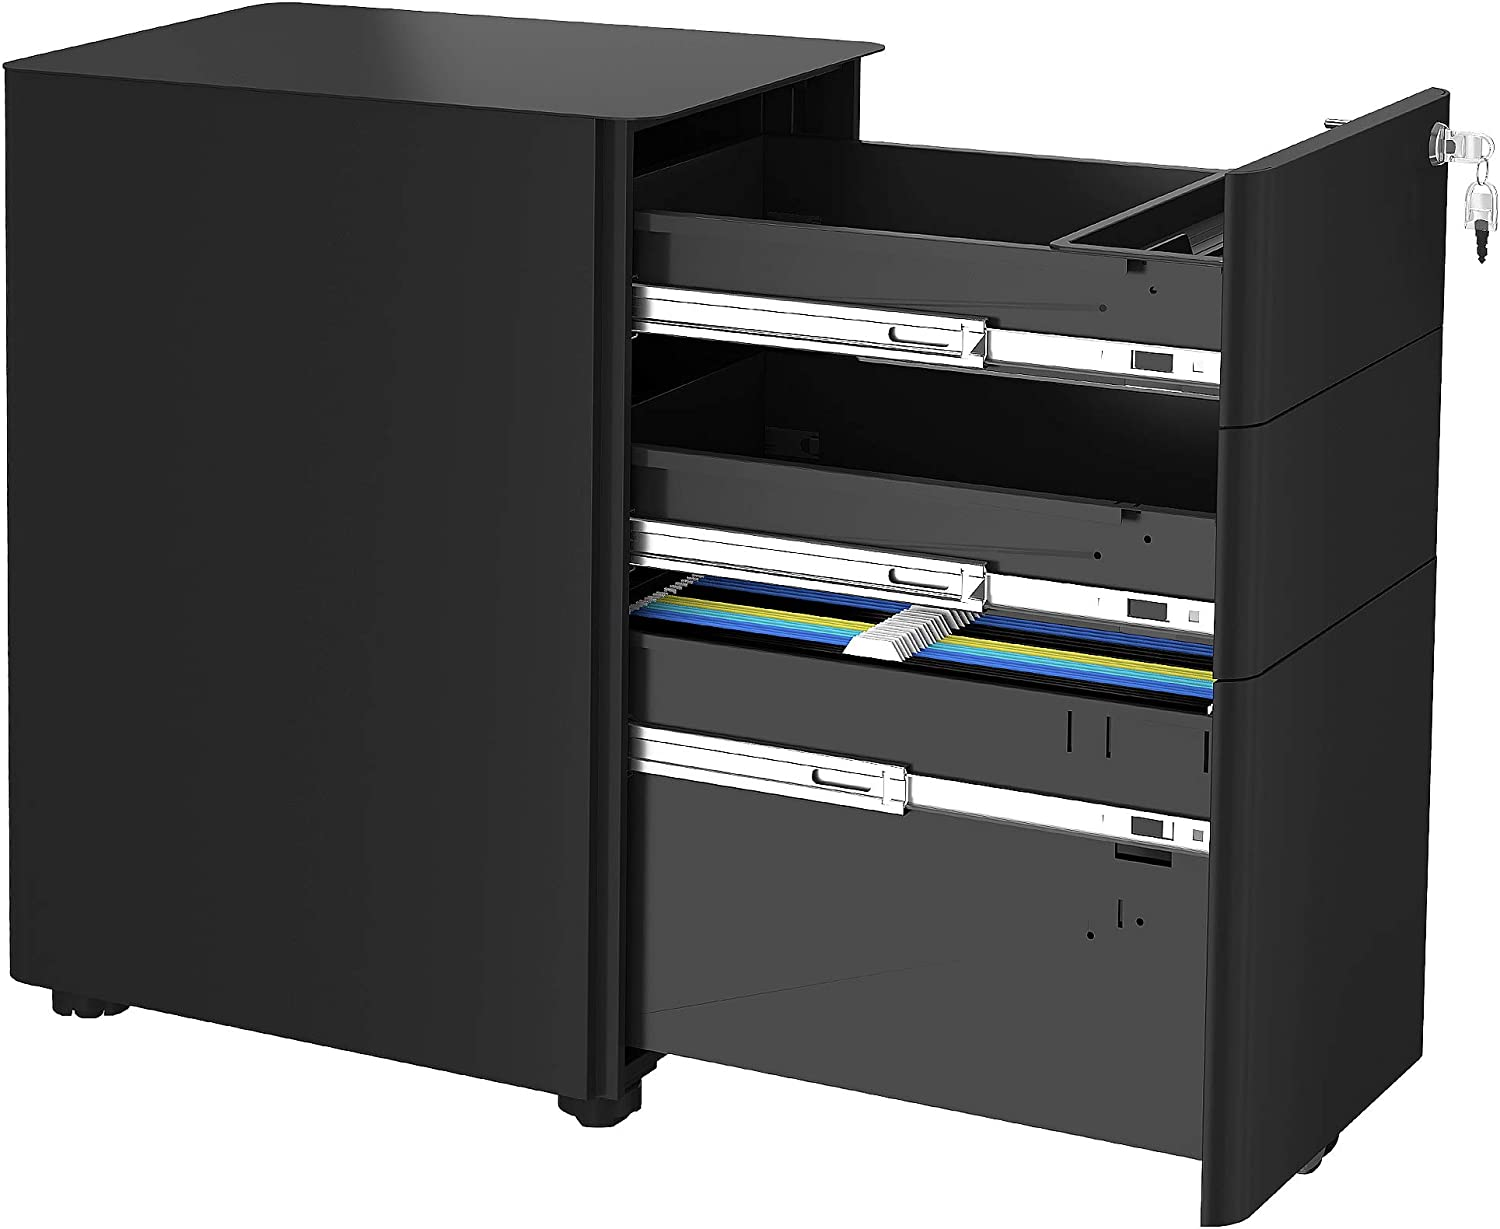 Store YITAHOME 3-Drawer Metal Filing Cabinet Drawers Oklahoma City Mall with Keys Office